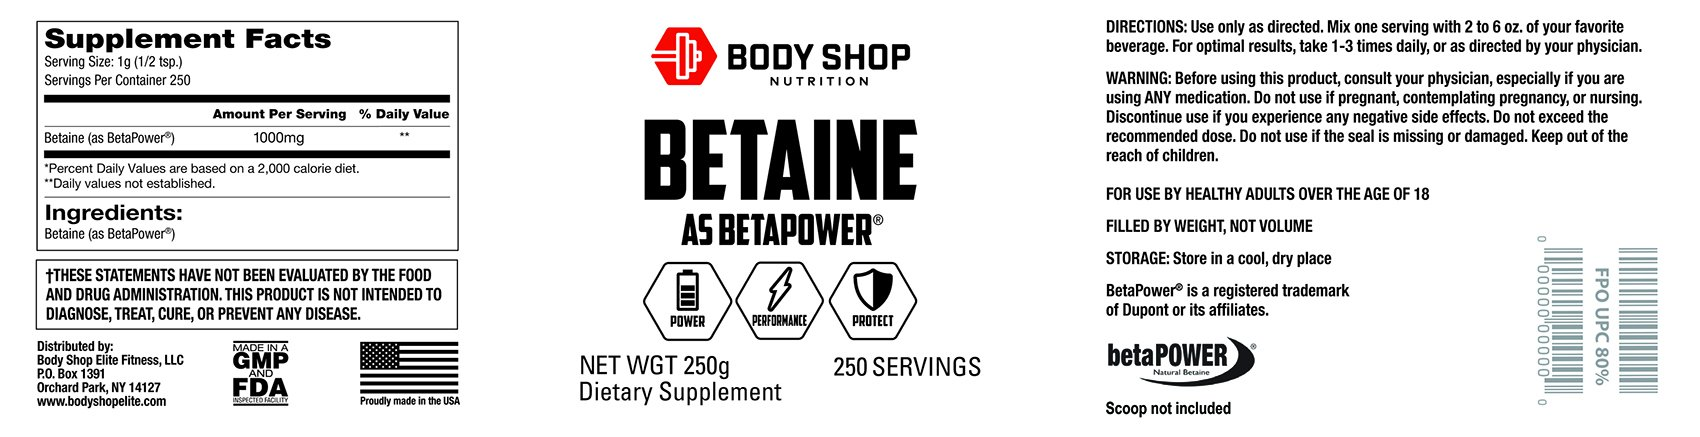 Body Shop Nutrition - 100% Pure BetaPower® Natural Betaine (Trimethylglycine) - 250g Powder - 100 Servings - Unflavored Supplement